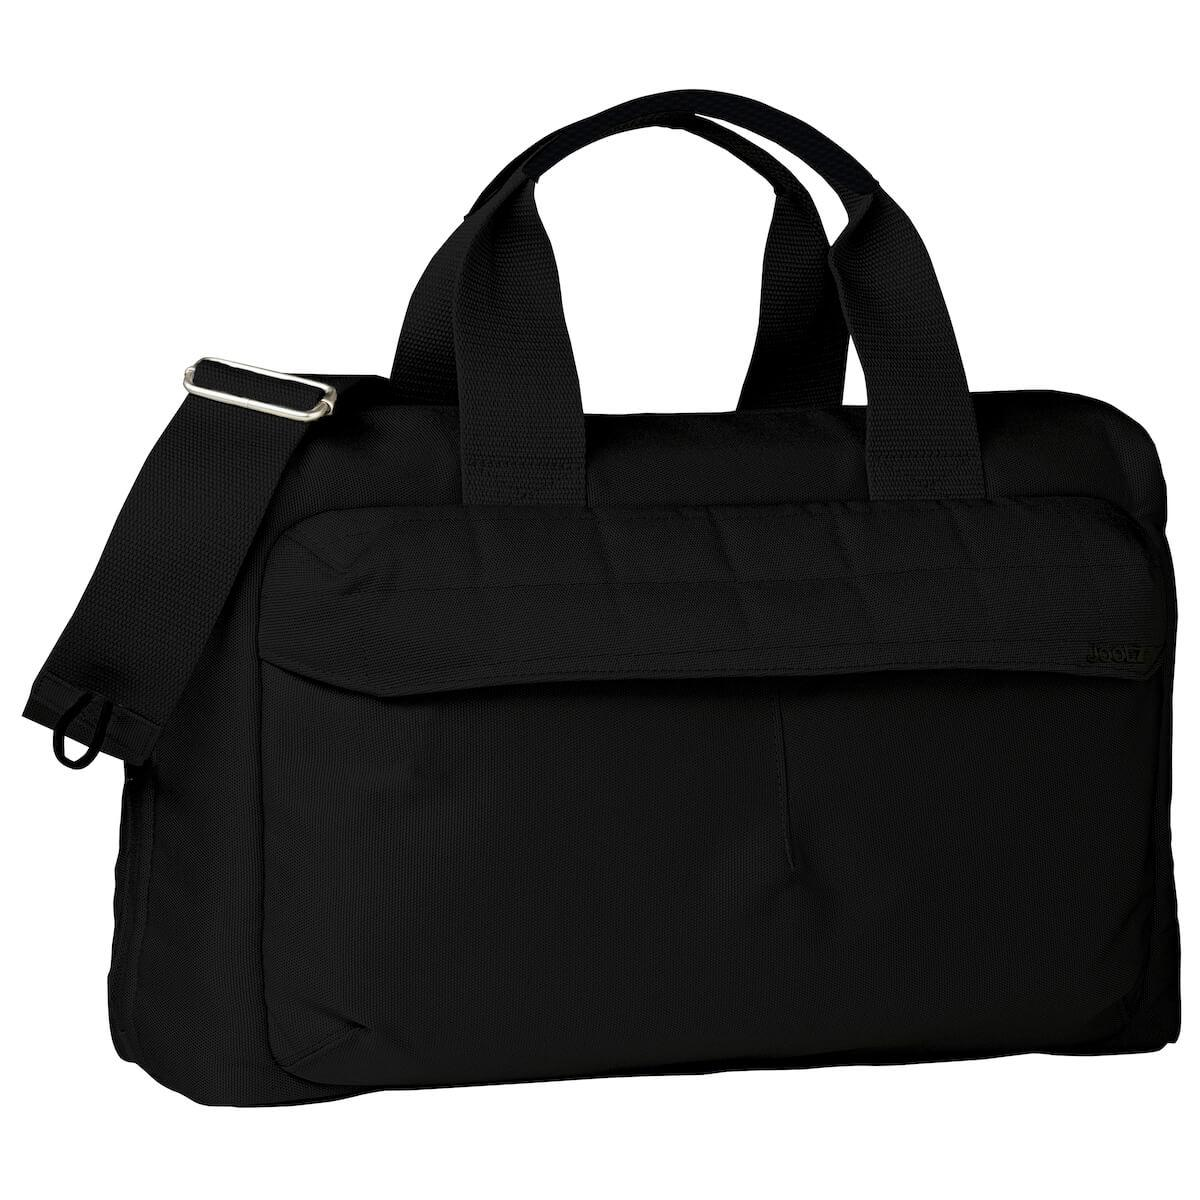 Sac à langer UNI² Joolz Brilliant black